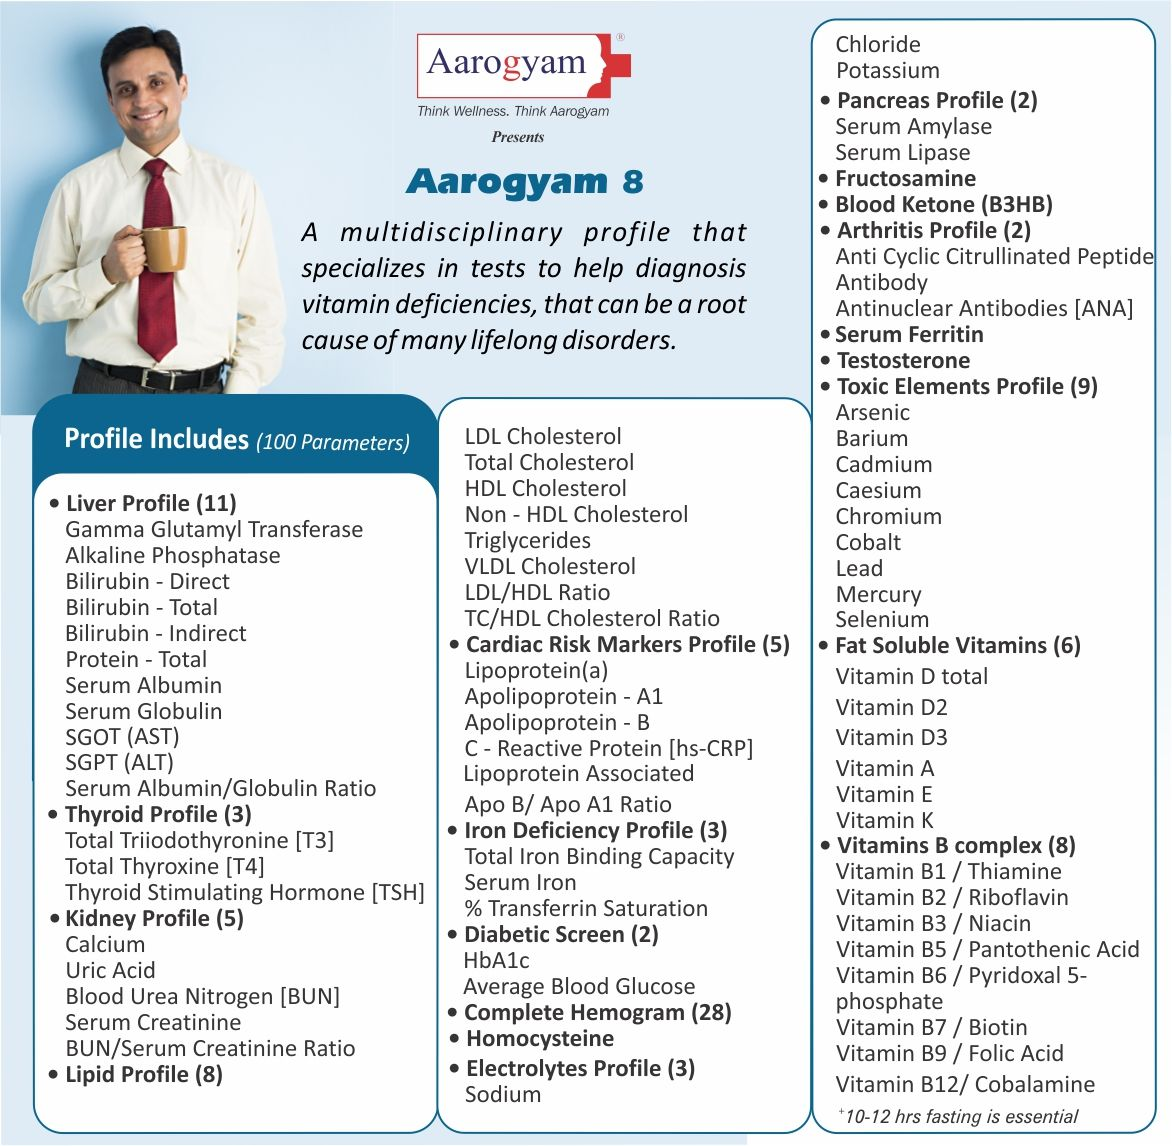 Pin on Thyrocare AAROGYAM Profiles